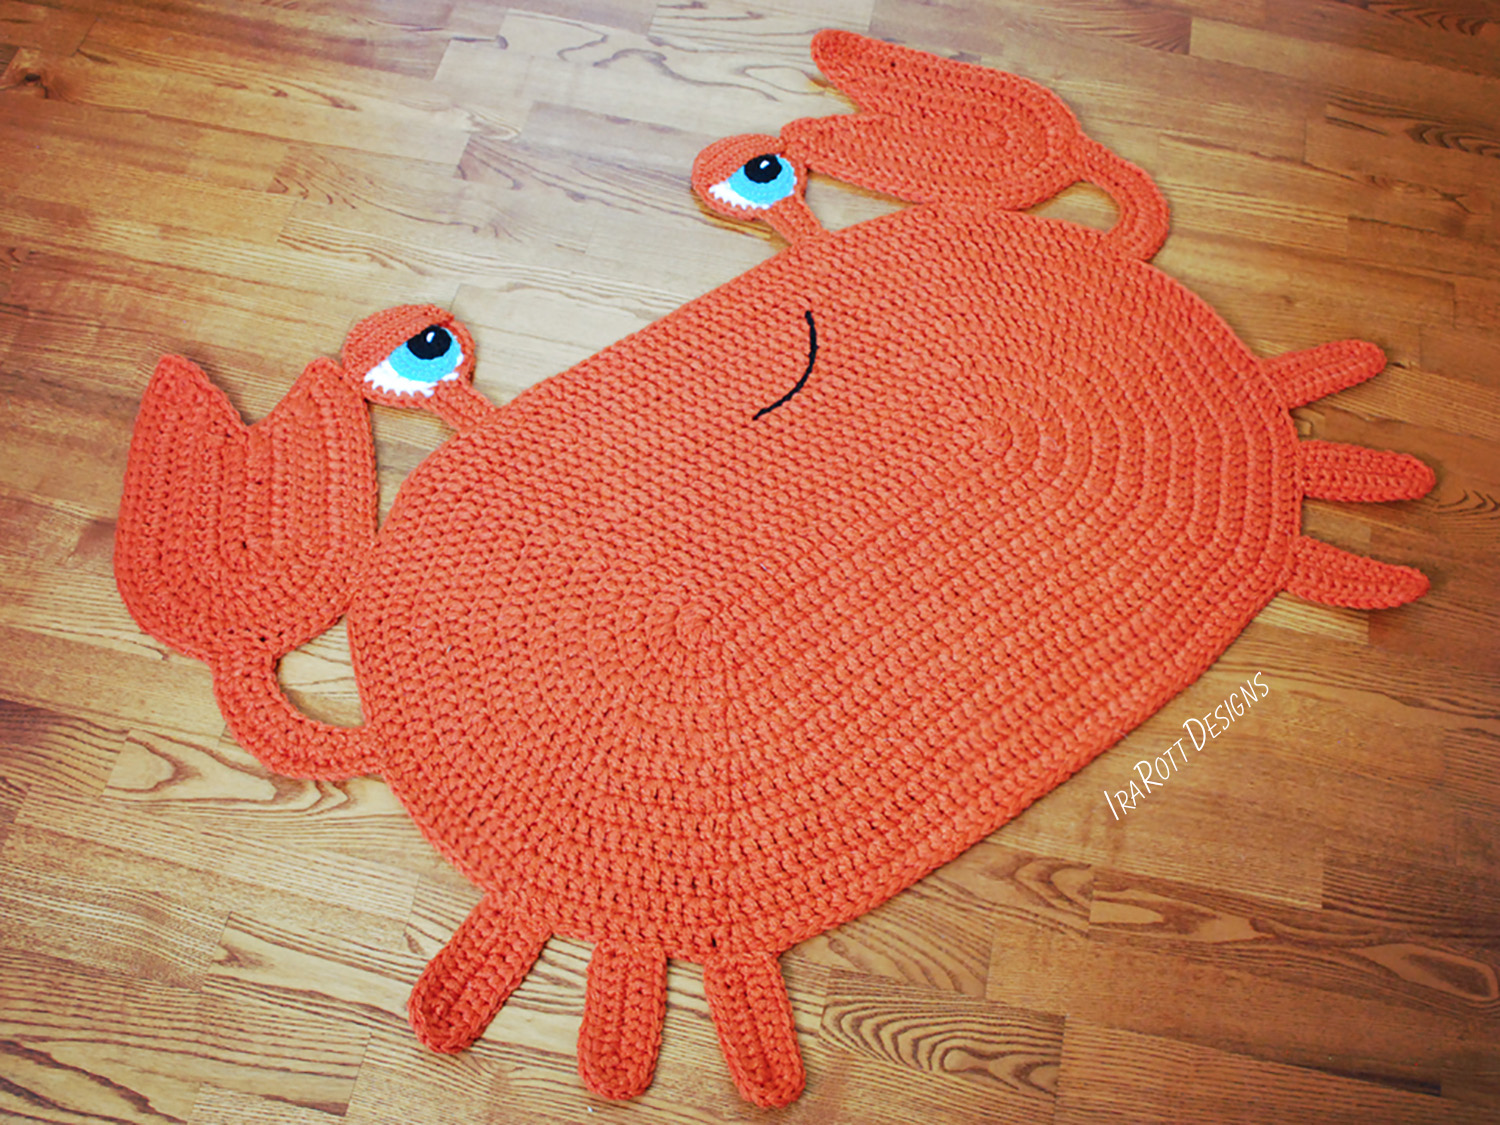 Scuttles the Crab Free Crochet Pattern • Spin a Yarn Crochet | 1125x1500